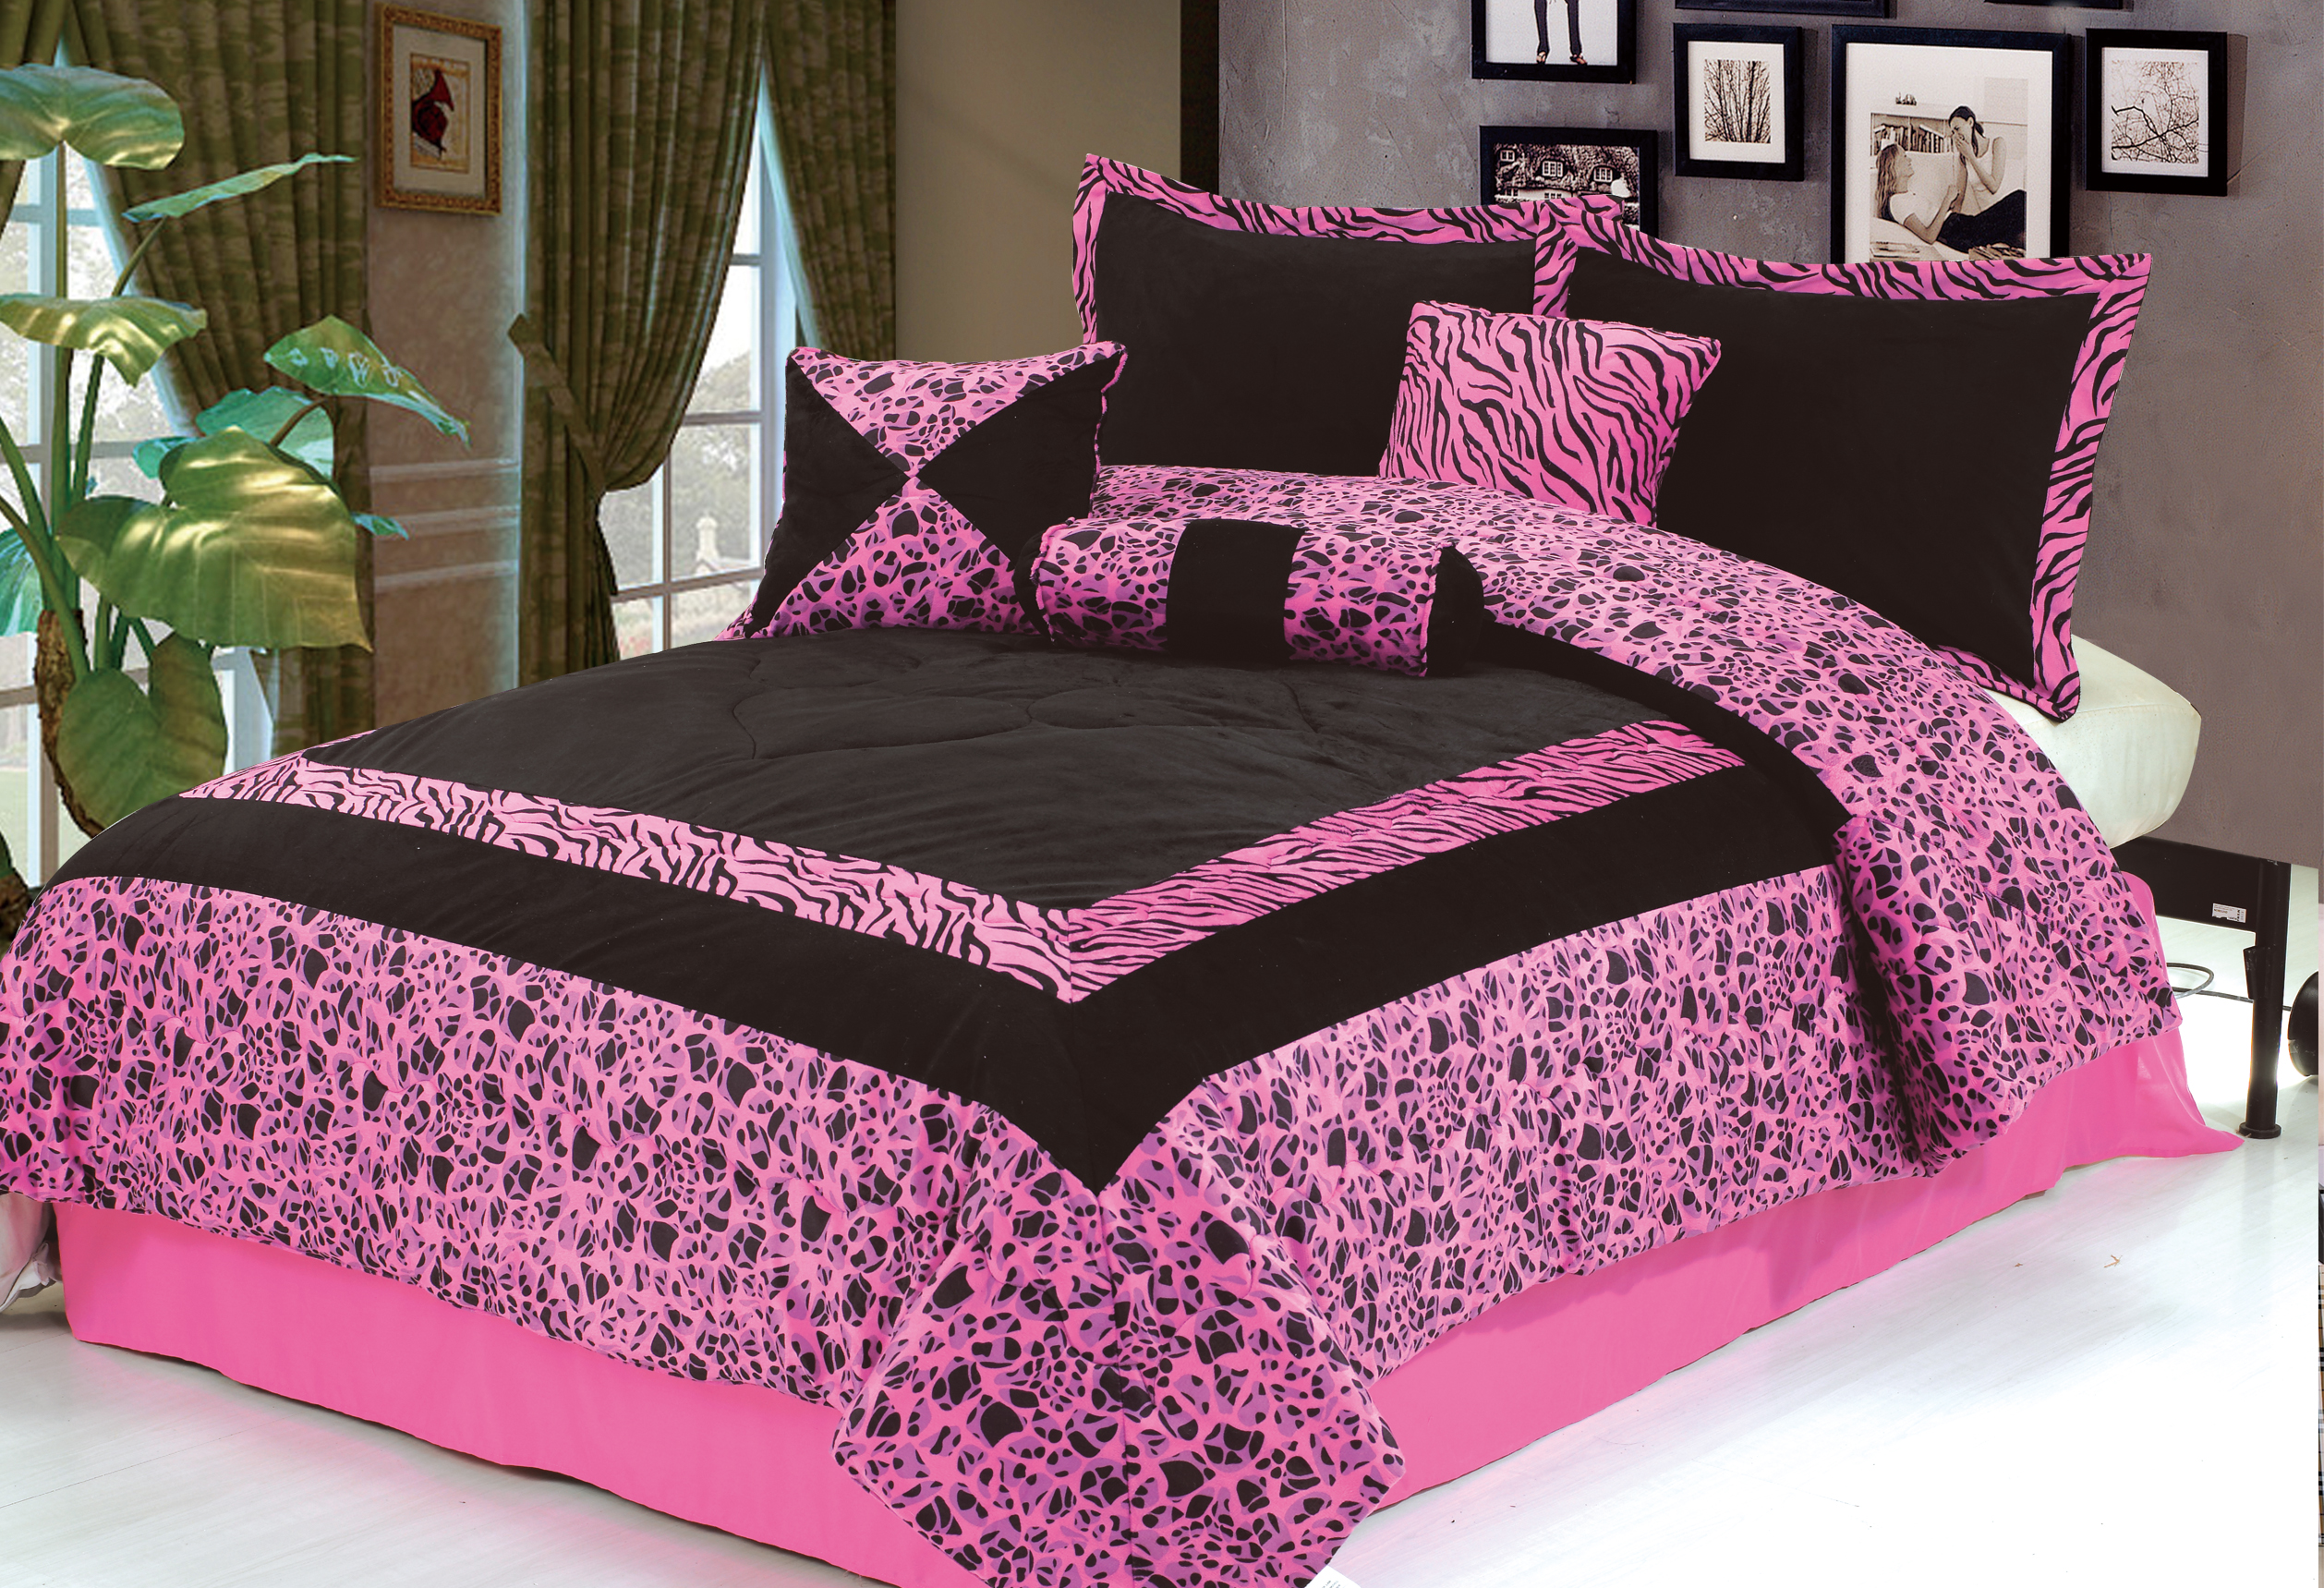 Black and pink bed sheets - Black And Pink Bedspreads 11 Cool Wallpaper Hdblackwallpaper Com